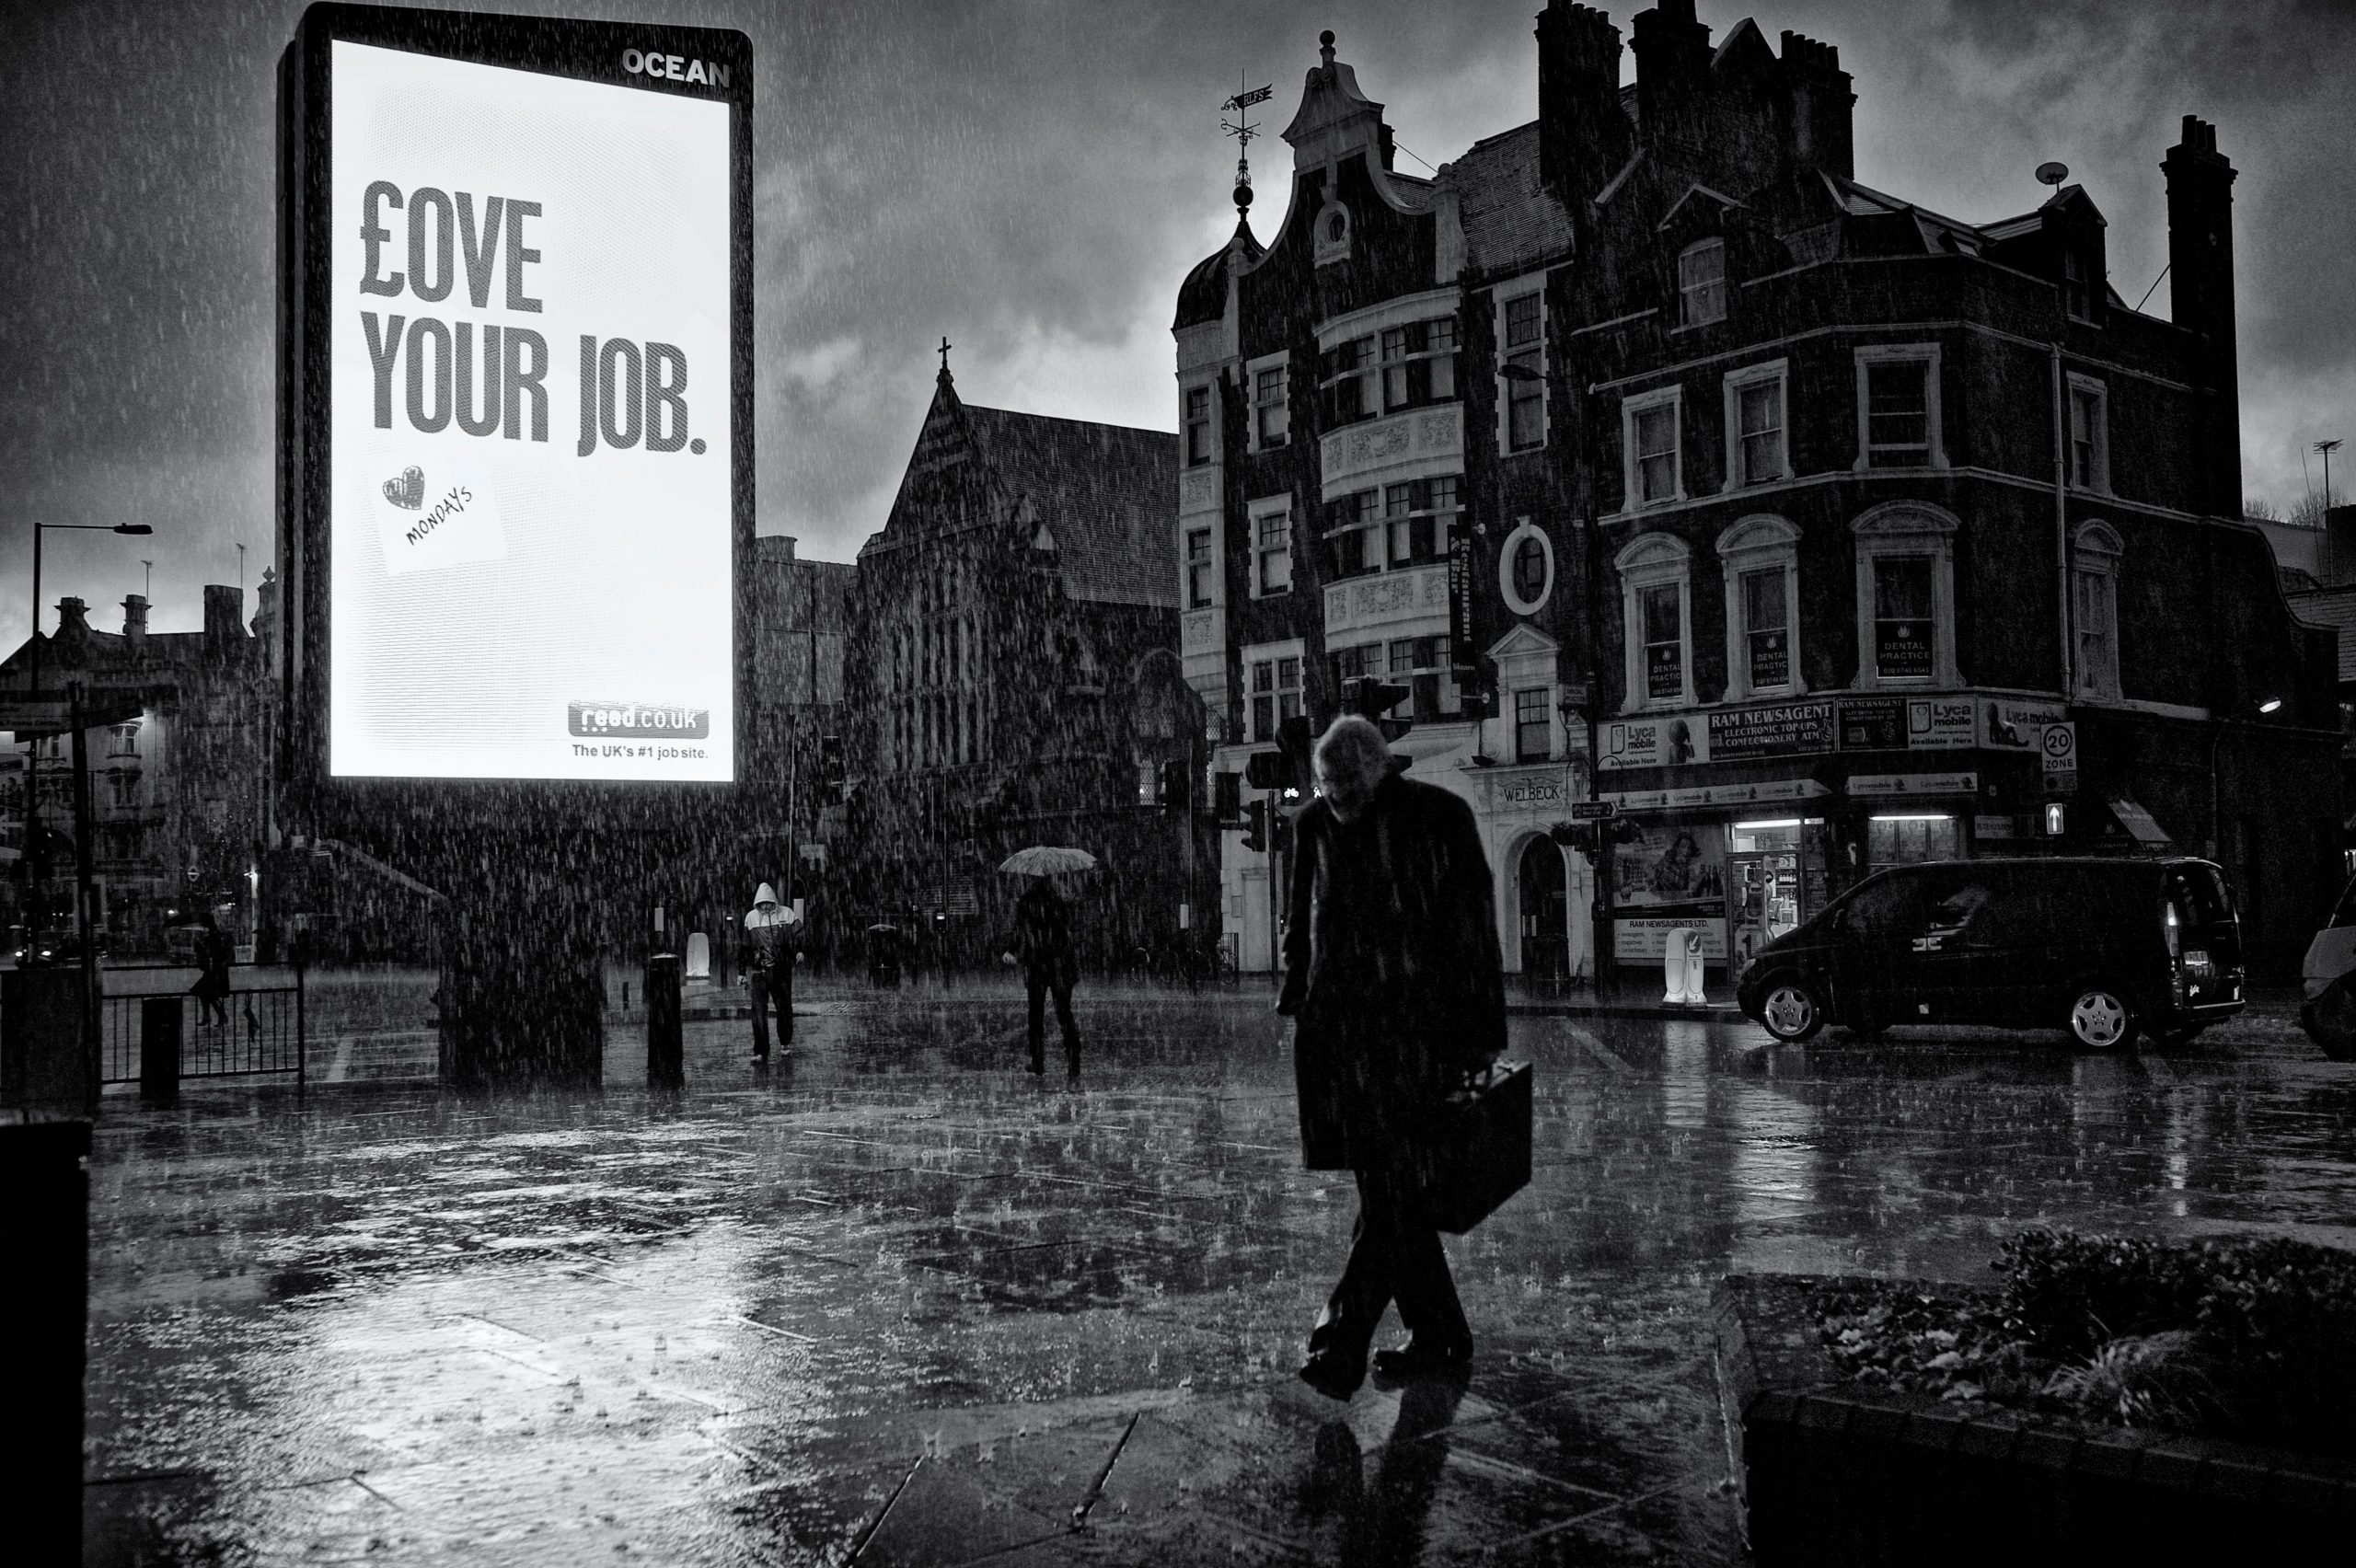 Rain - black and white street photography